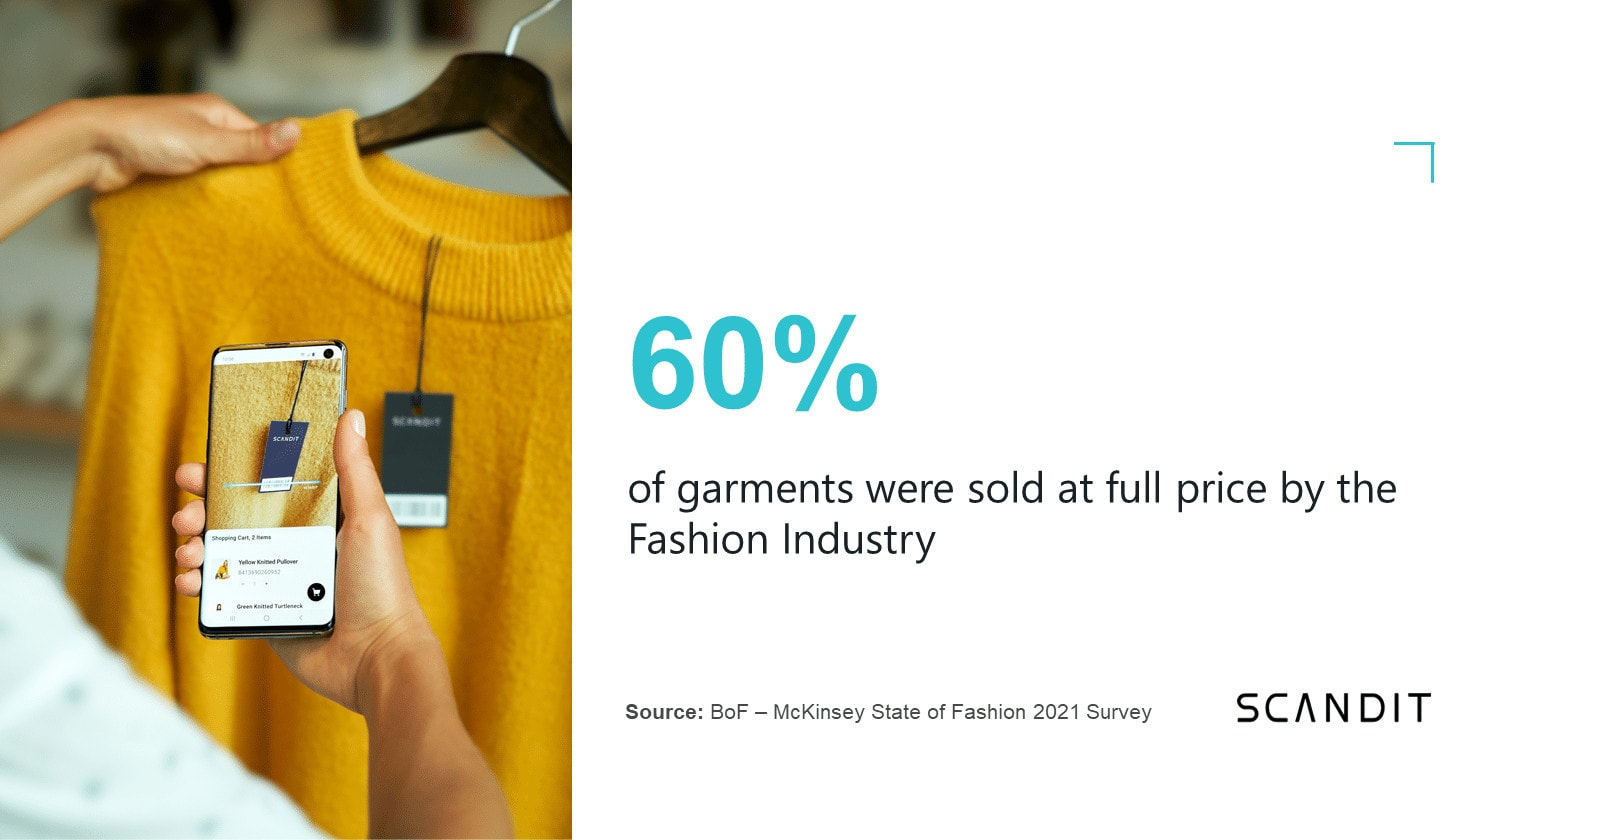 60% of garments were sold at full price by the fashion industry